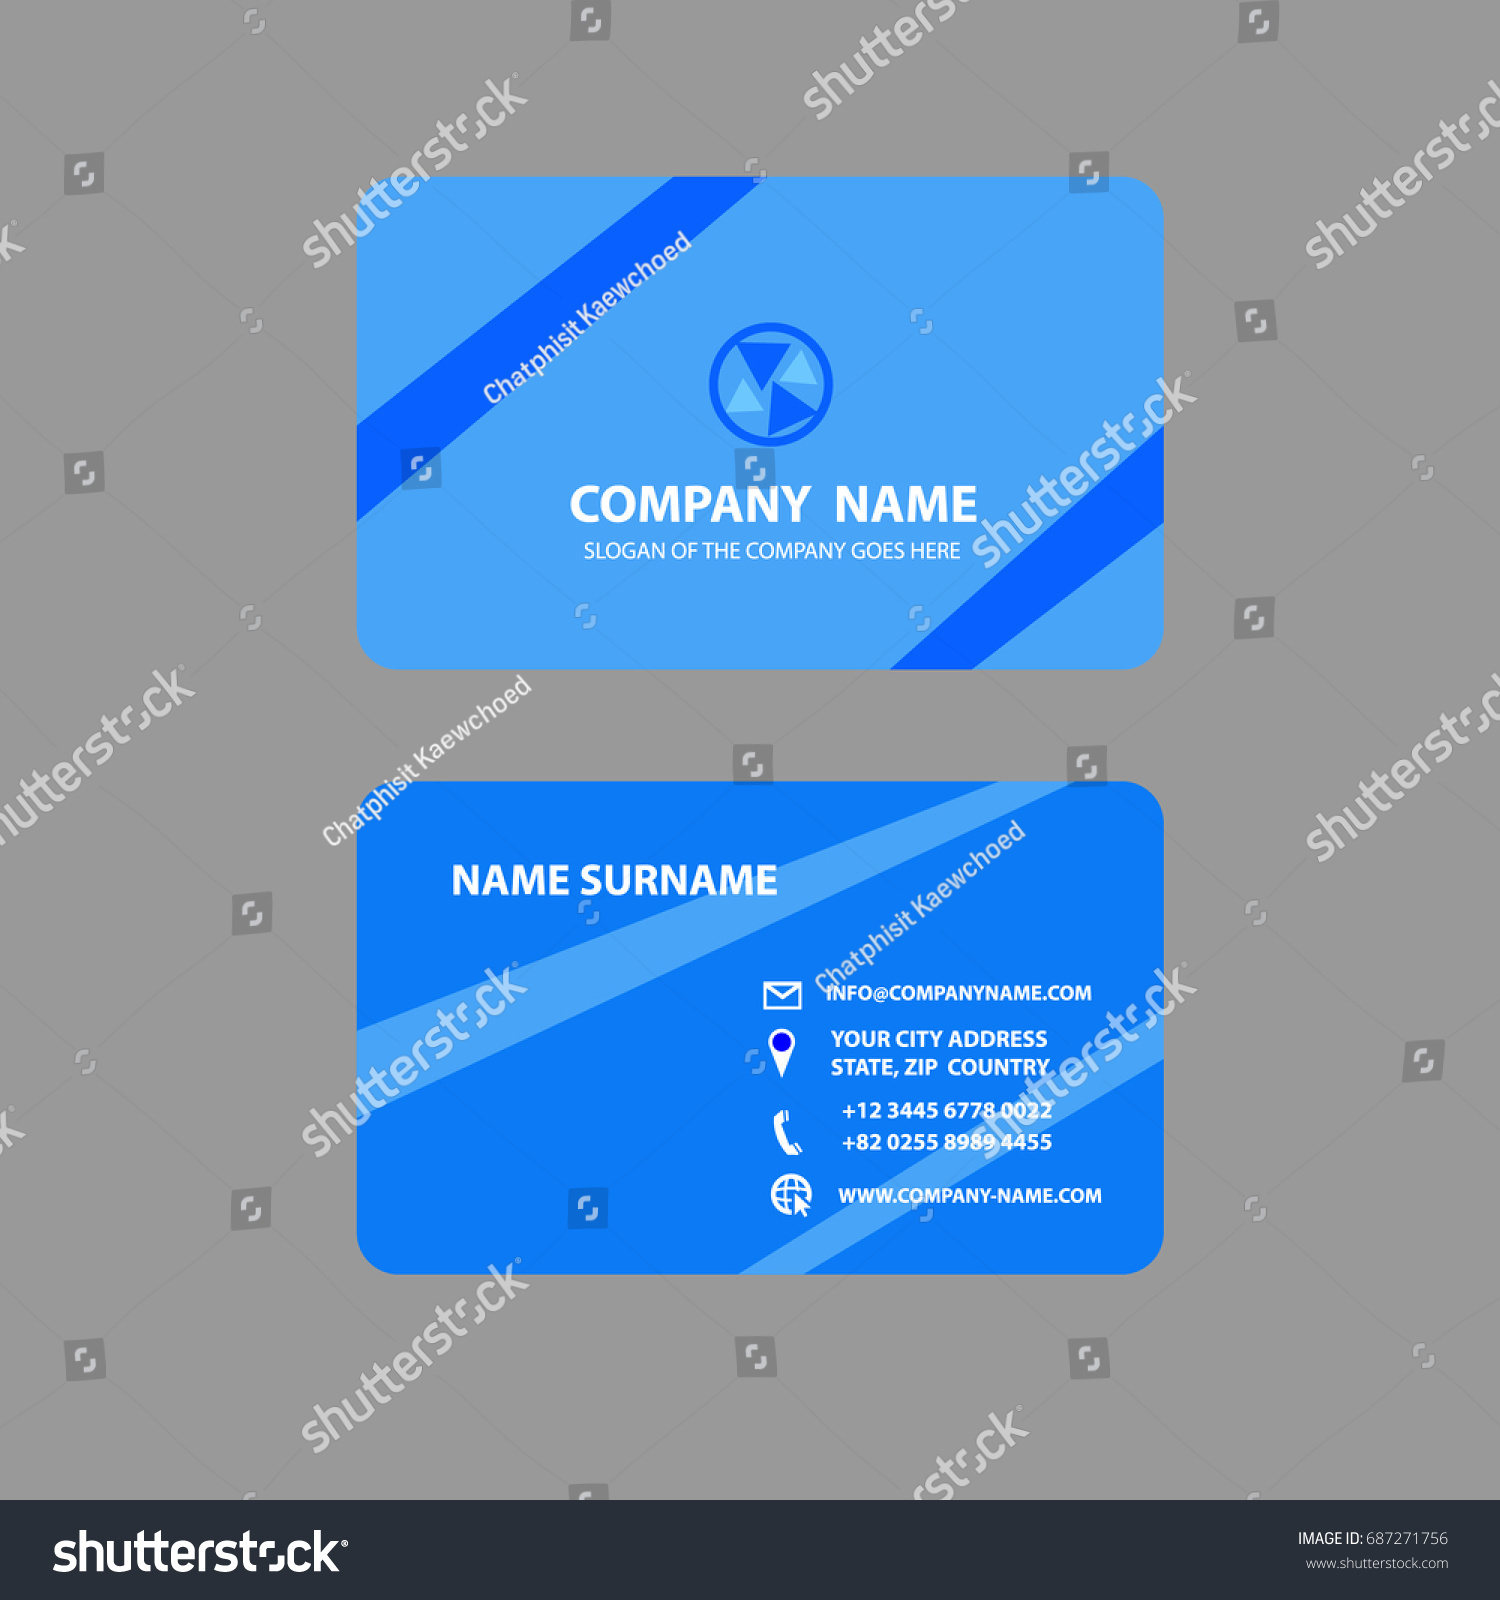 Business card blue gallery free business cards business card blue gallery free business cards business card blue images free business cards business card magicingreecefo Images